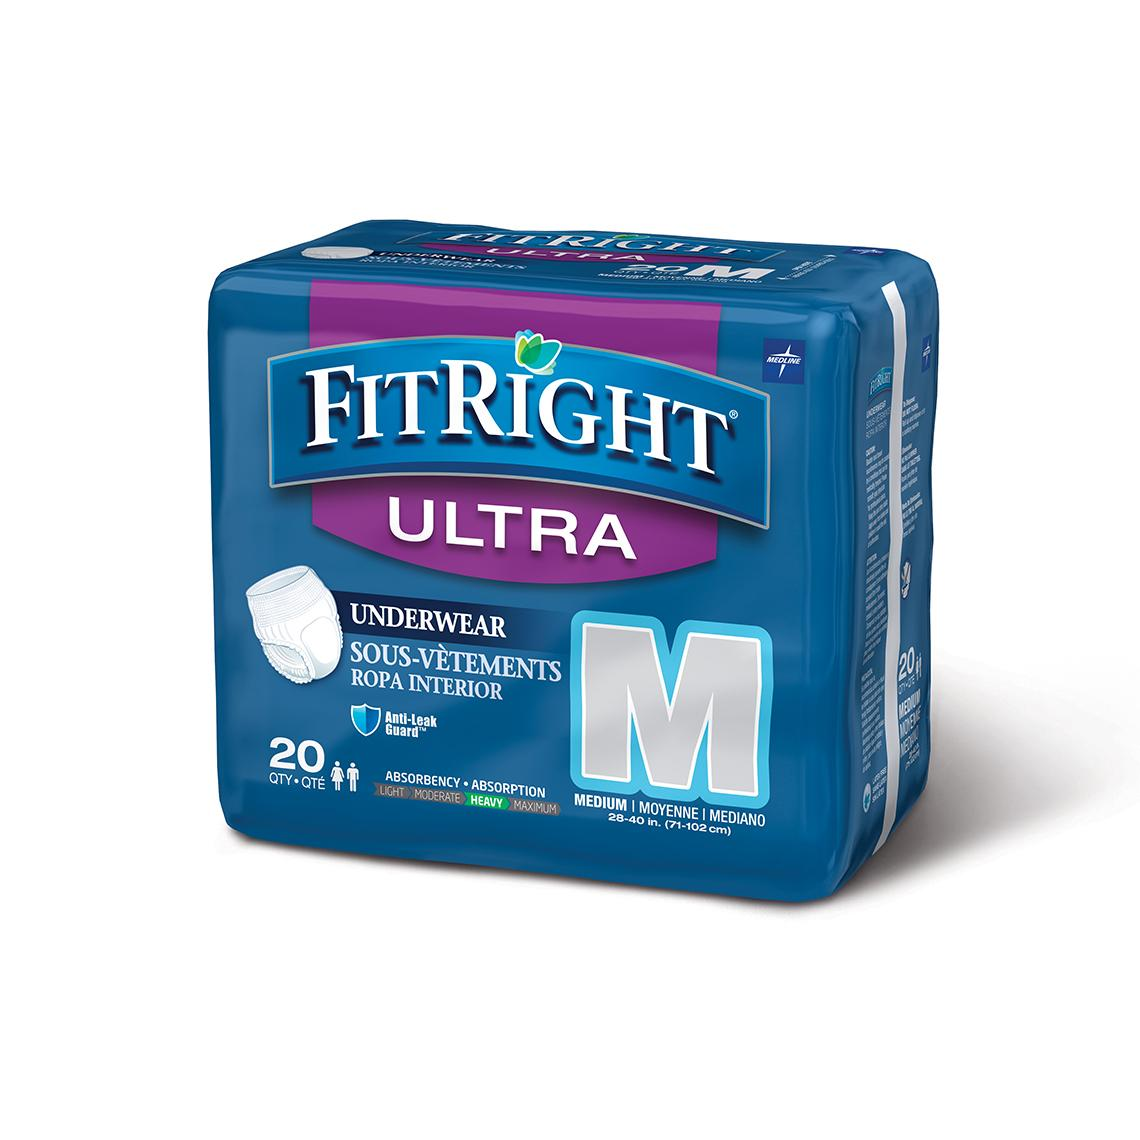 Medline FitRight Ultra Protective Disposable Underwear, 20 count, (Pack of 4)